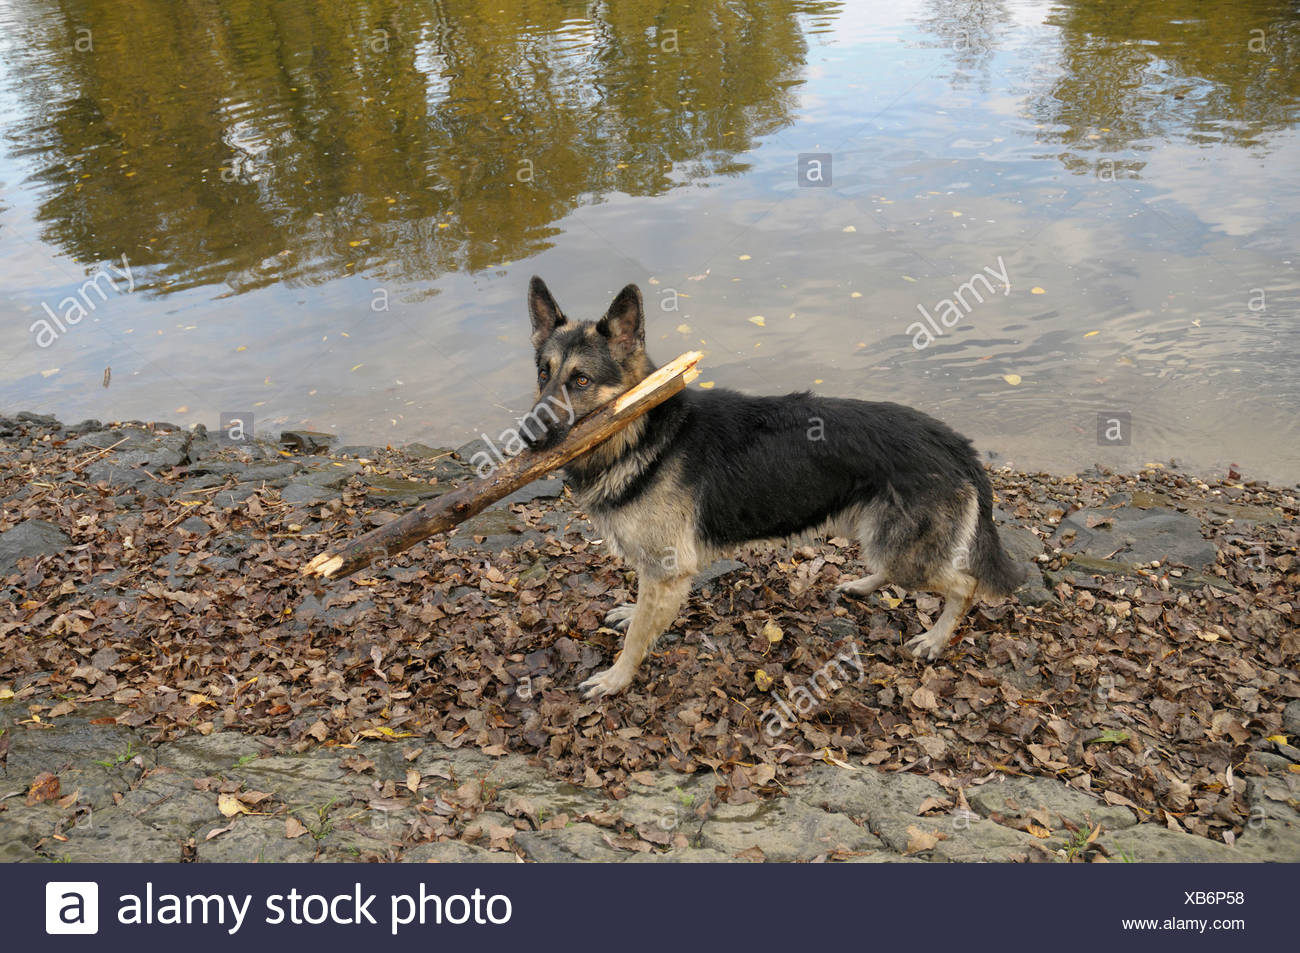 German Shepherd dog standing with a large branch in its mouth on a riverbank - Stock Image